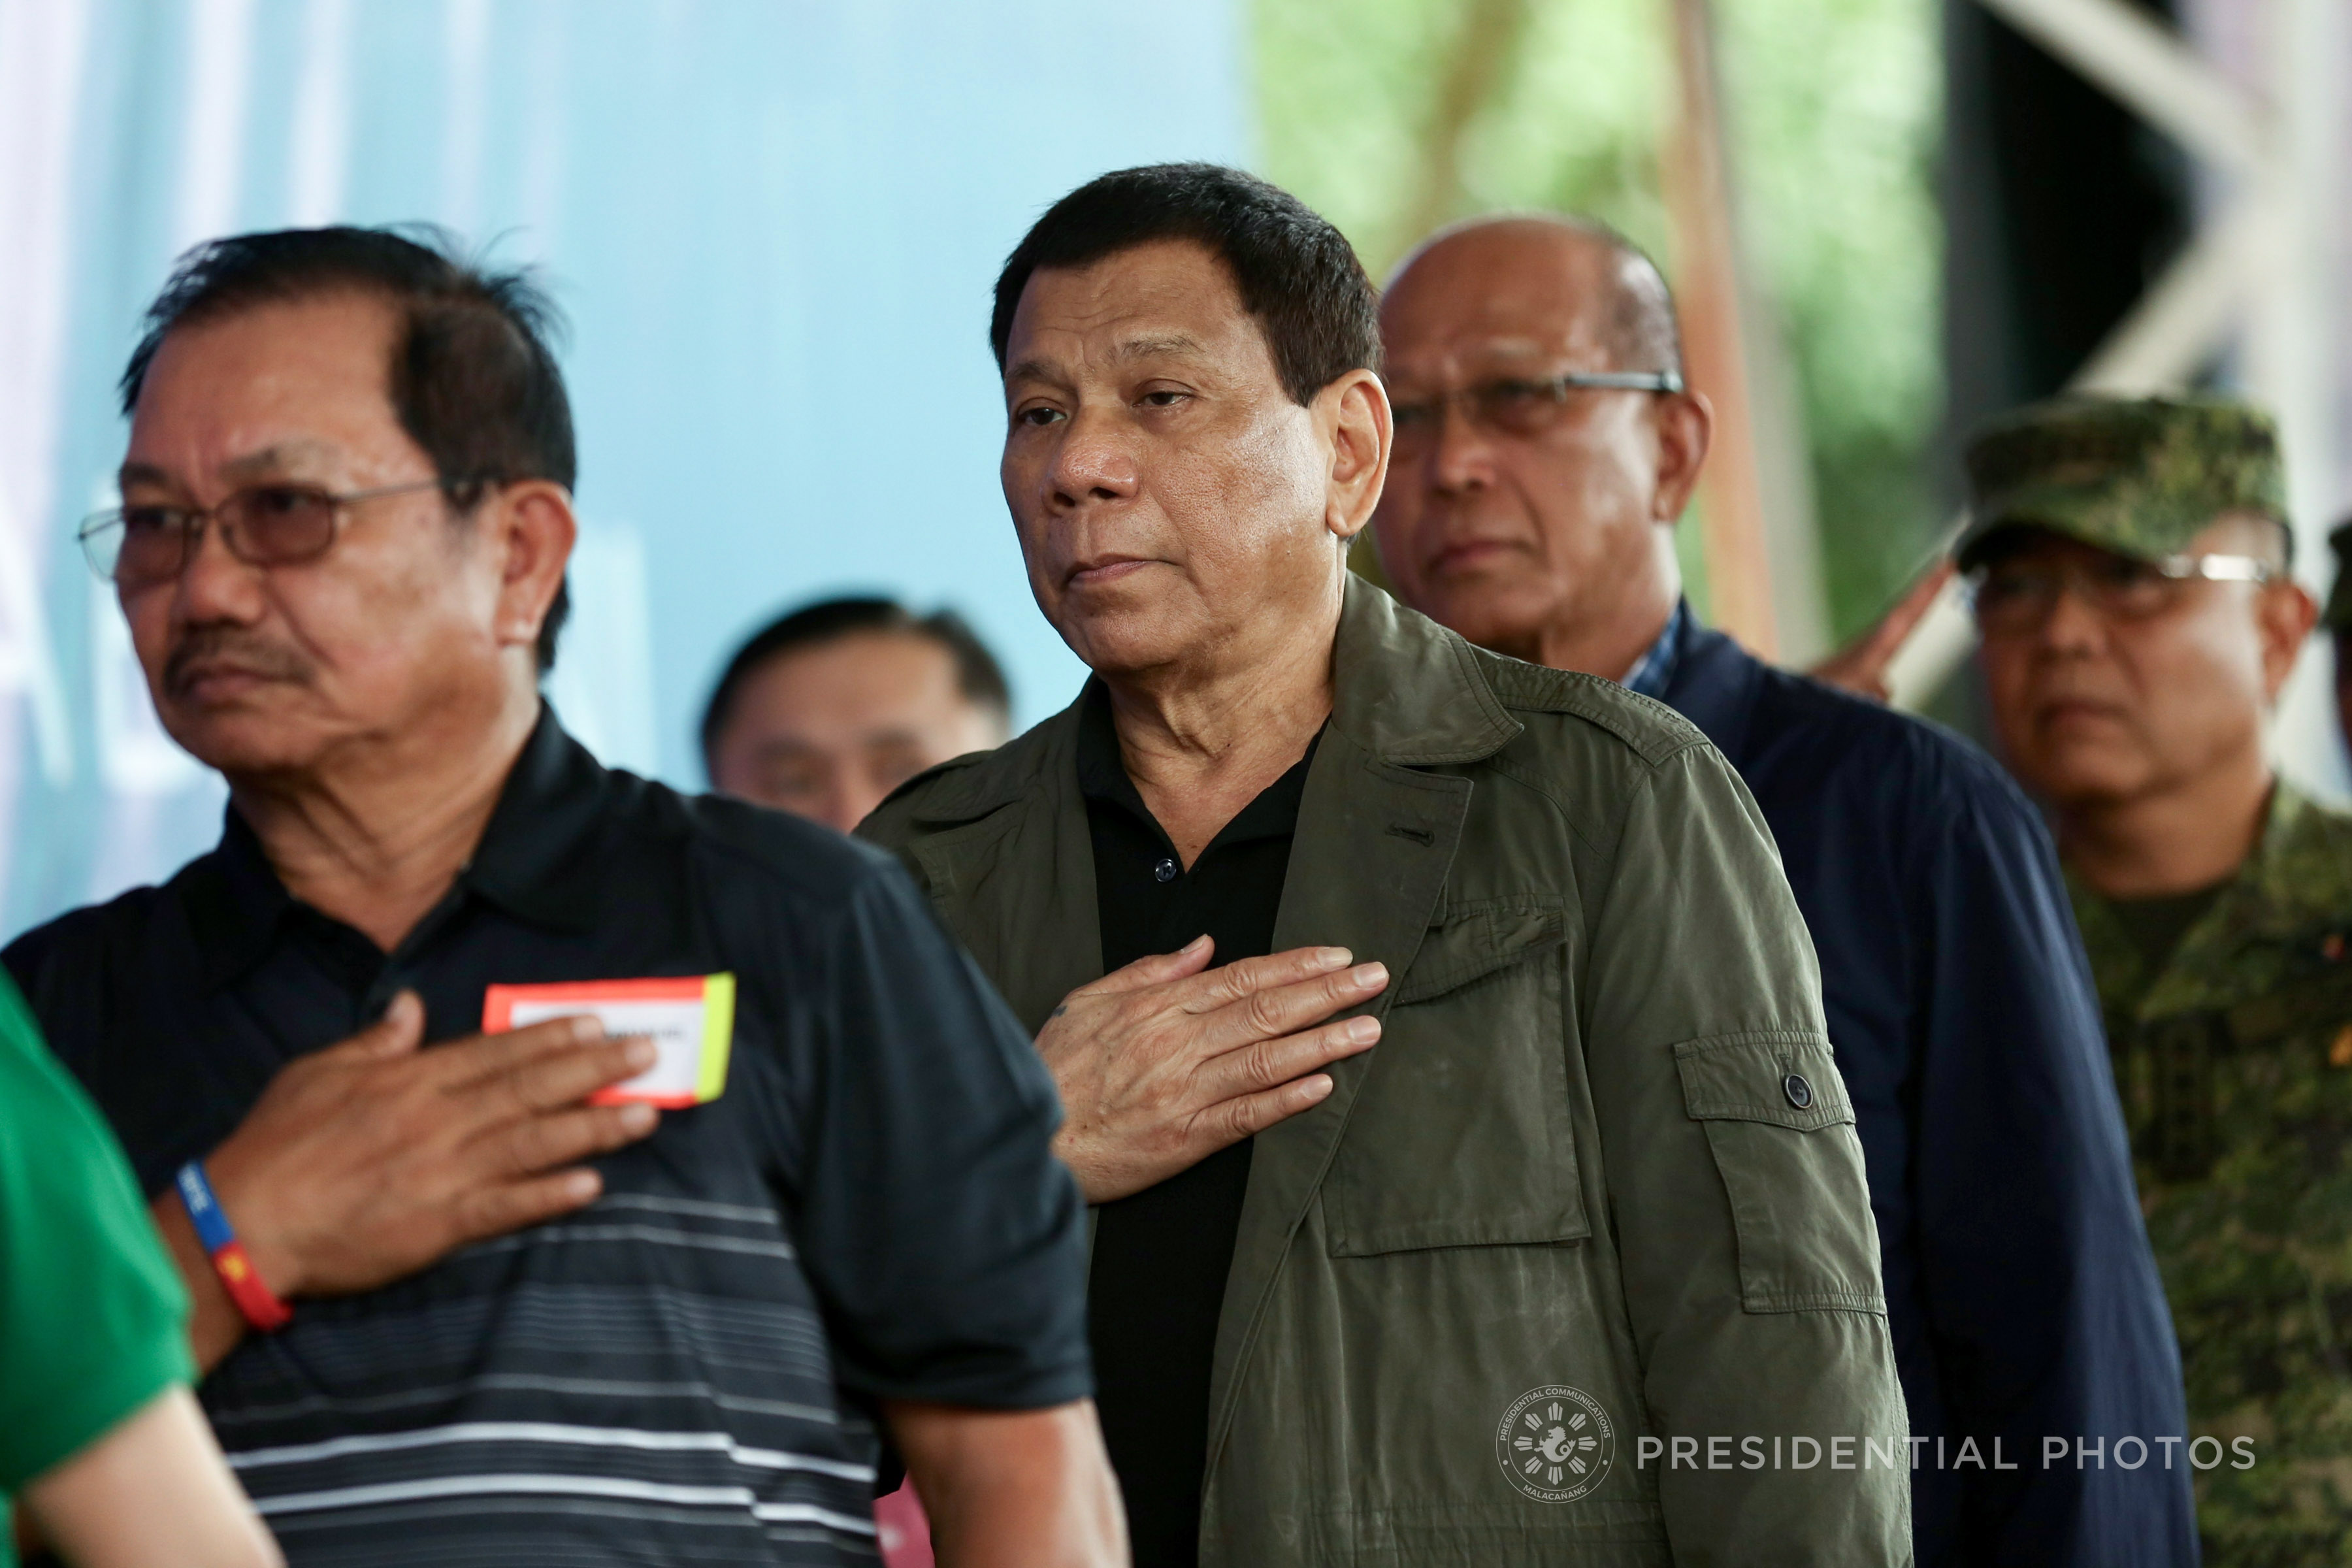 President Rodrigo Roa Duterte sings the Philippine National Anthem during the establishment of the TienDA Para sa mga Bayani at Camp General Manuel Yan in Mawab Sr. in Mawab Compostela Valley Province on January 22, 2018. Also in the photo are Agriculture Secretary Emmanuel Piñol, Defense Secretary Delfin Lorezana and Armed Forces of the Philippines Chief of Staff Rey Guerrero. (Photo by Richard Madelo/Presidential Photo)